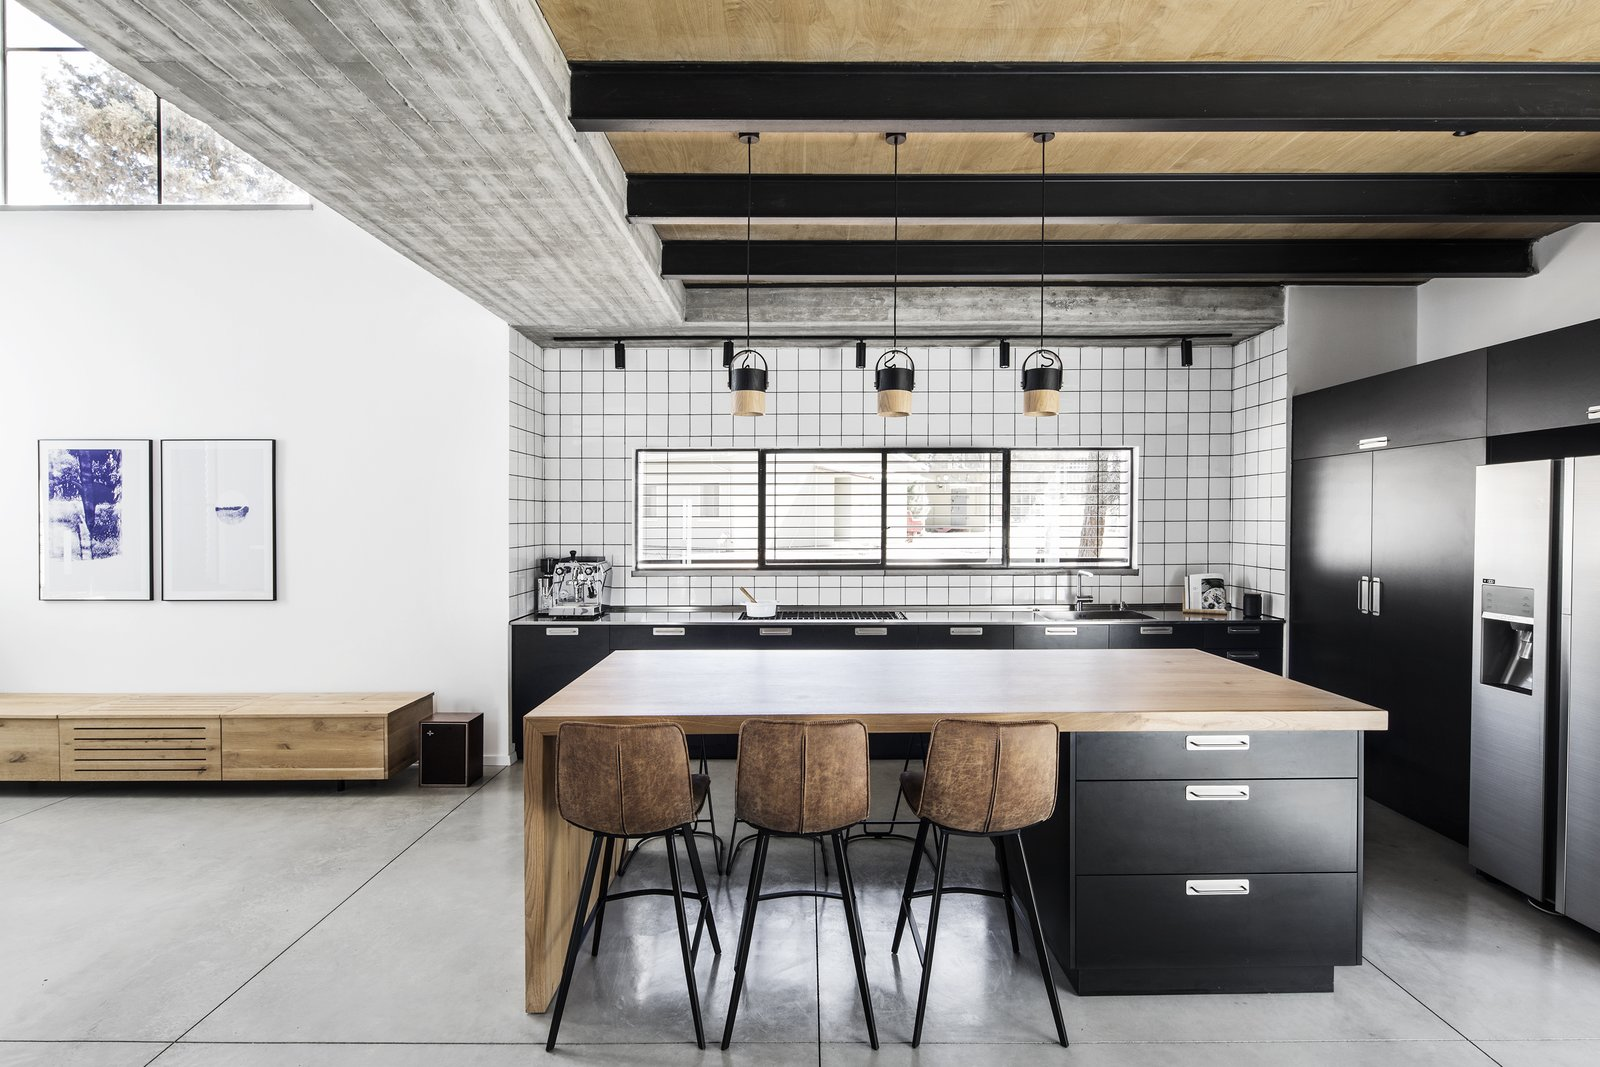 Kitchen, Refrigerator, Cooktops, Dishwasher, Metal Counter, Colorful Cabinet, Concrete Floor, Ceramic Tile Backsplashe, Ceiling Lighting, Pendant Lighting, and Undermount Sink  Nir Am House by Shir Shtaigman